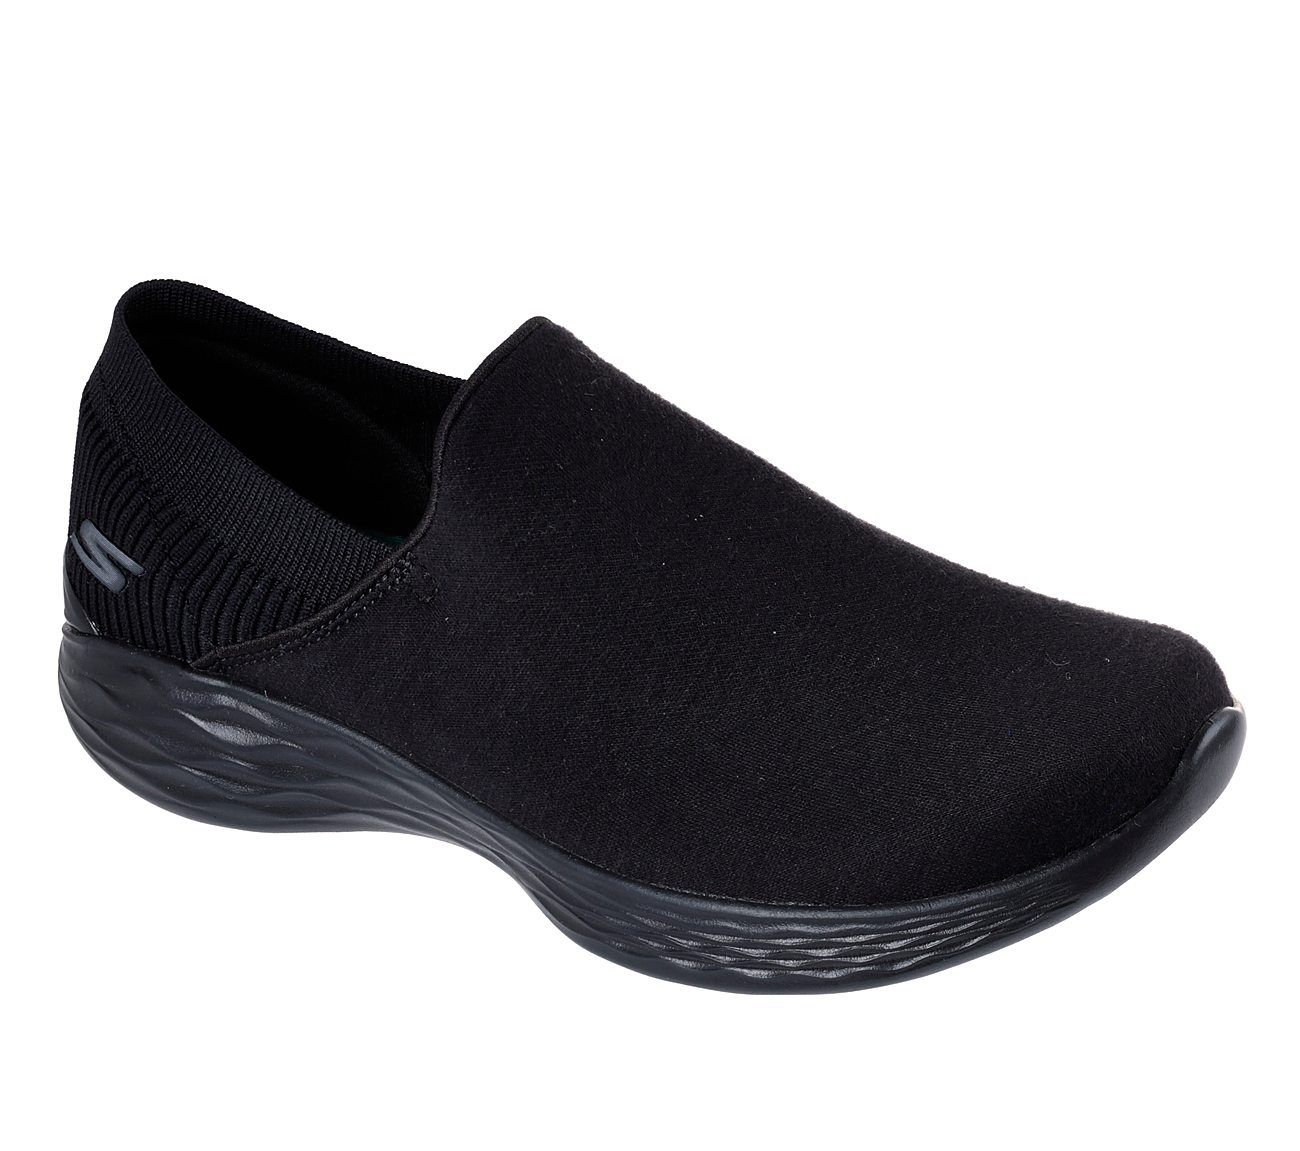 You By Skechers A New Footwear Collection Combining Lifestyle